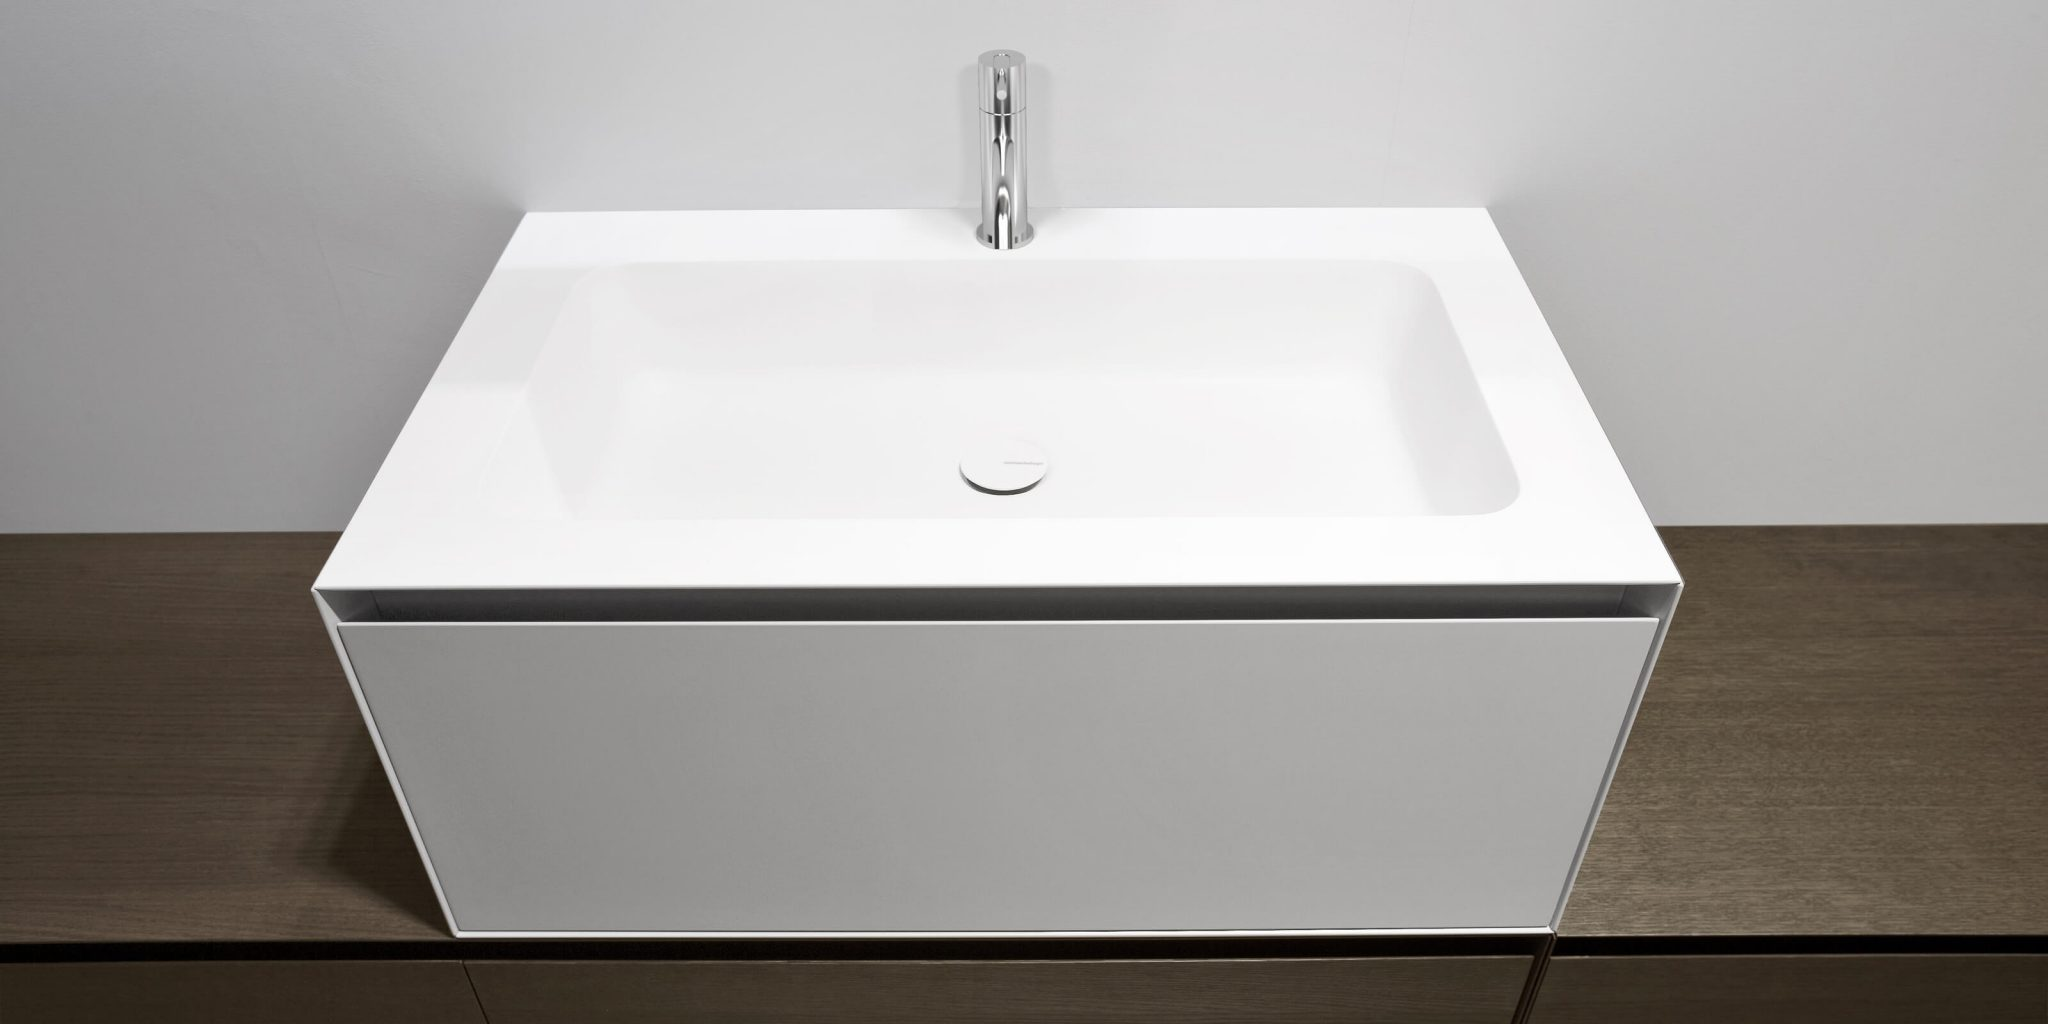 Piano Lavabo In Corian arco – ambient showroom